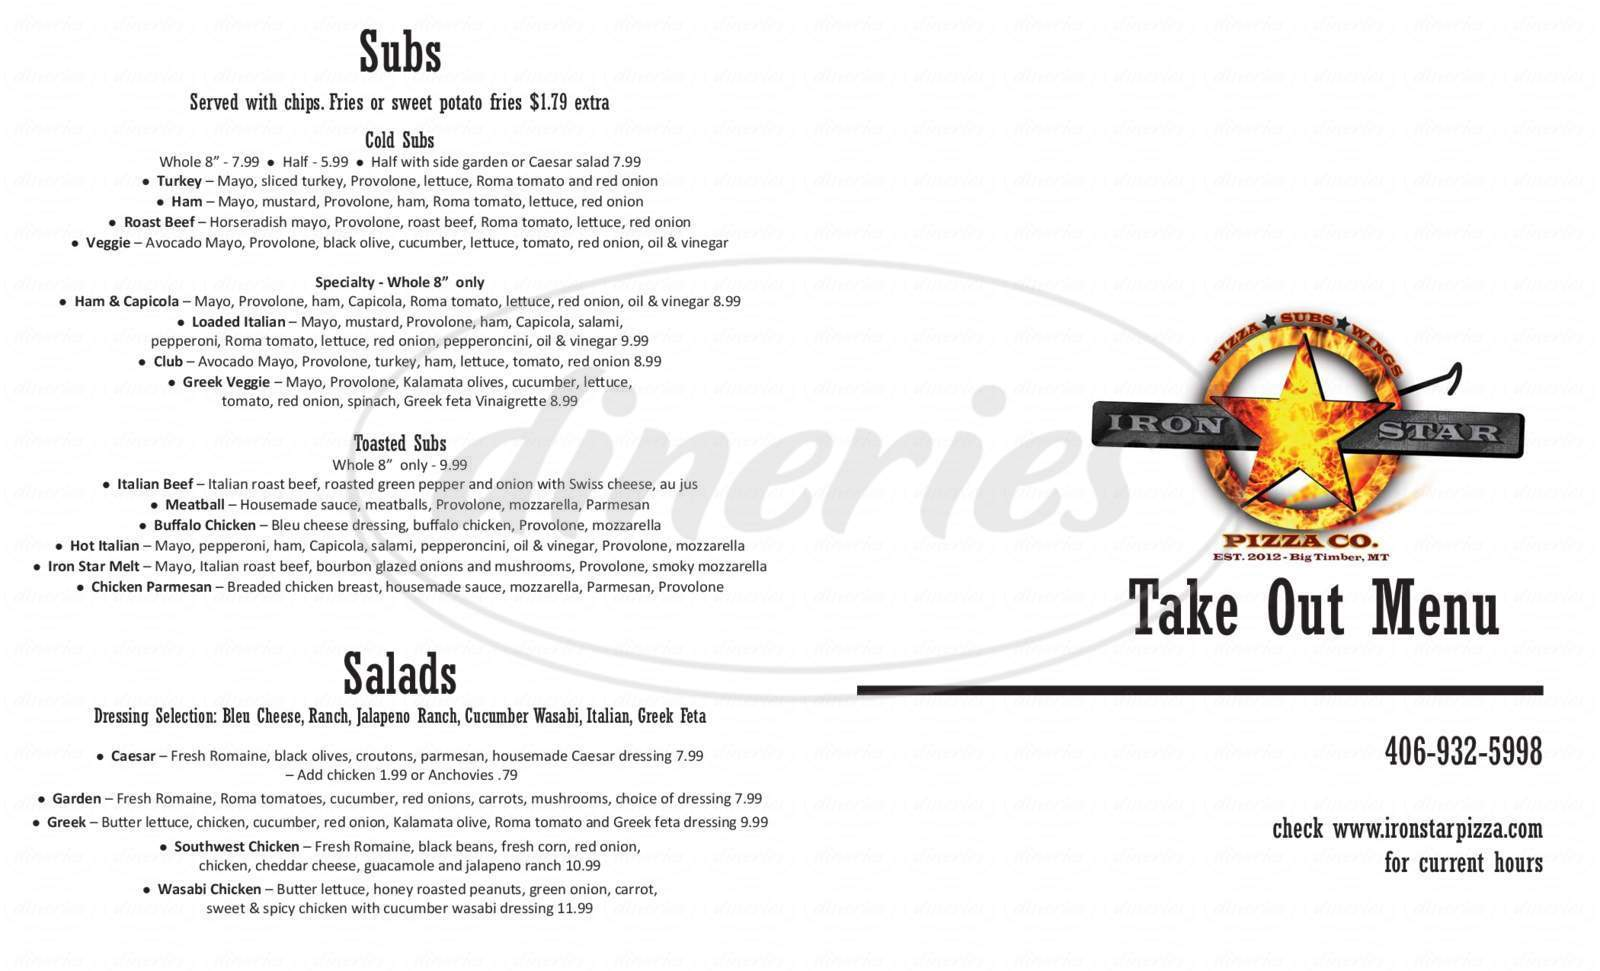 menu for Iron Star Pizza Co.